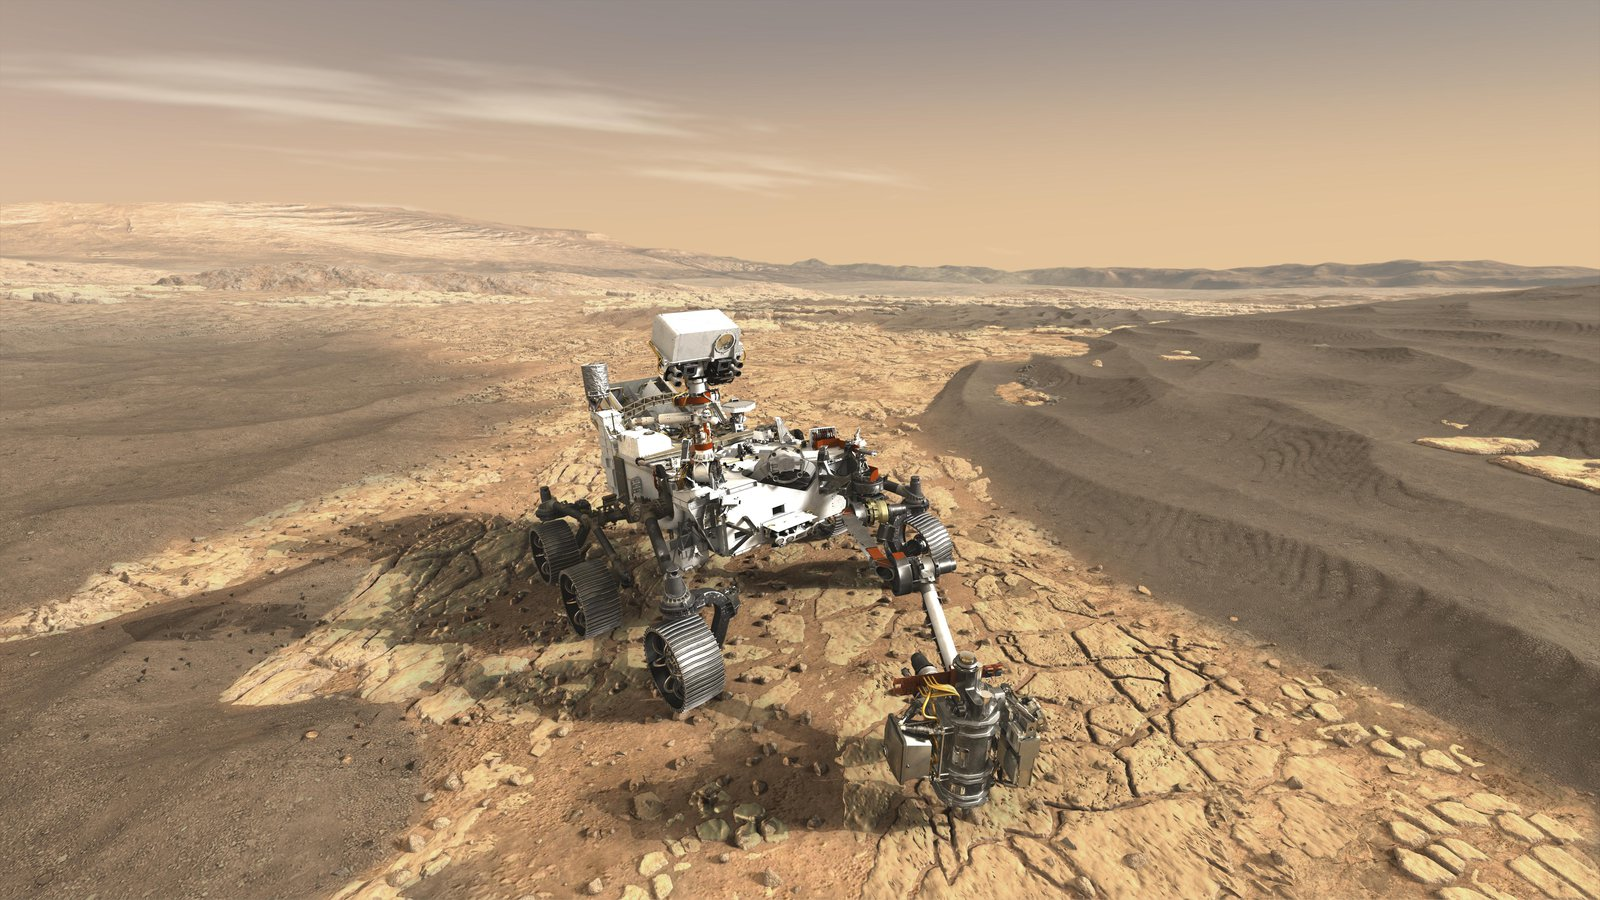 Artist's concept depicts NASA's Mars 2020 rover on the surface of Mars.